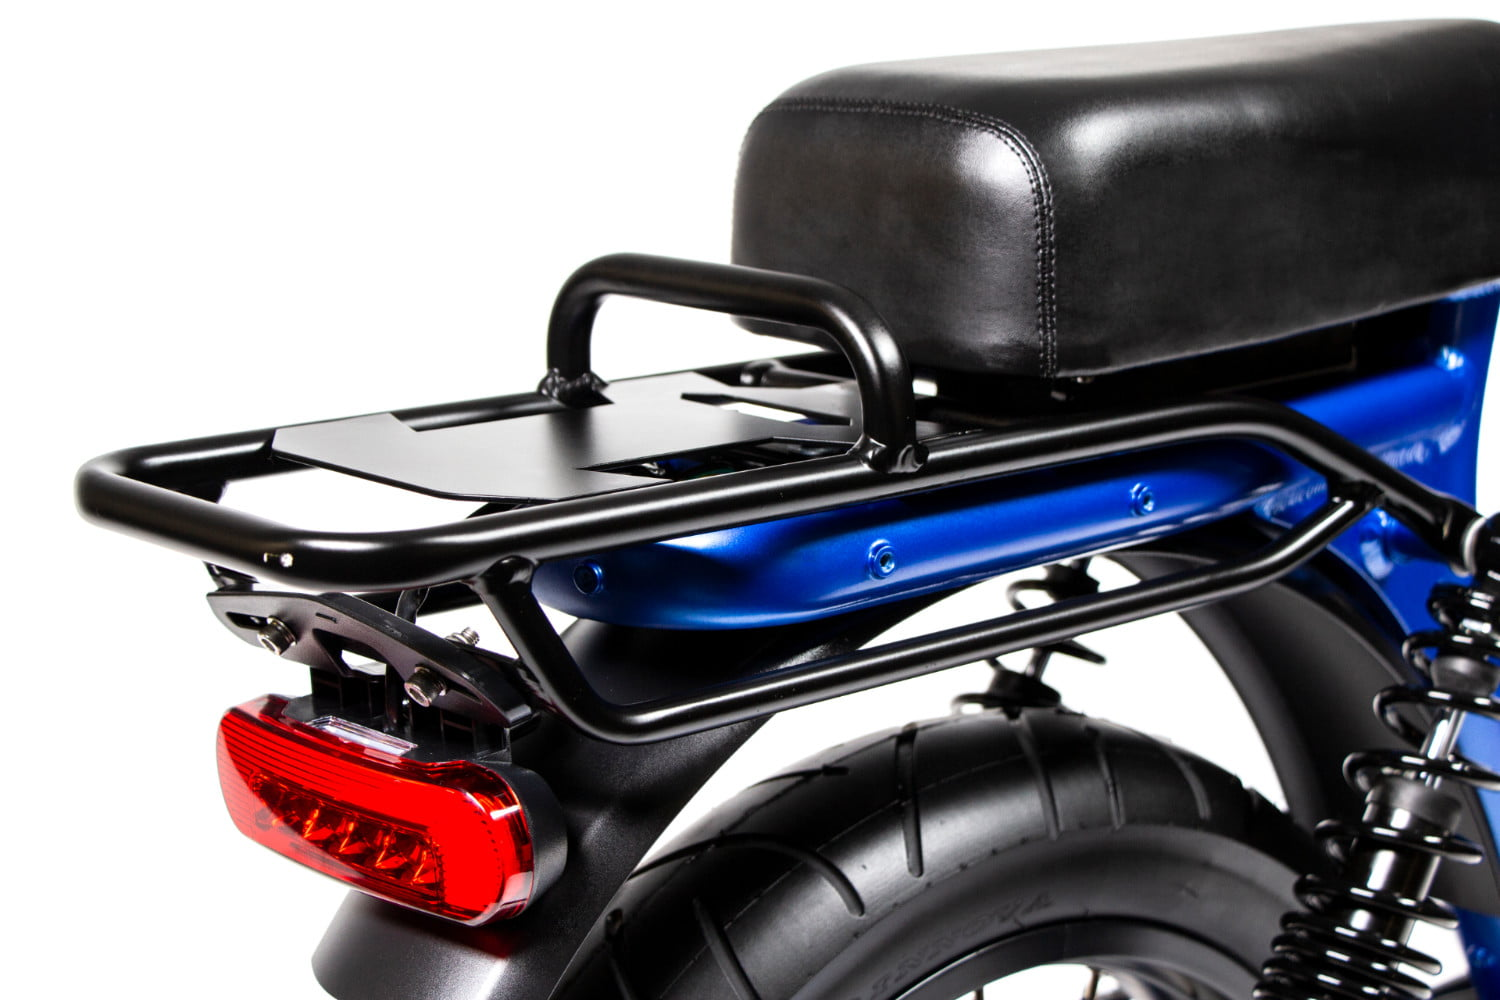 juiced bikes scorpion moped style e bike packs performance safety and comfort 06